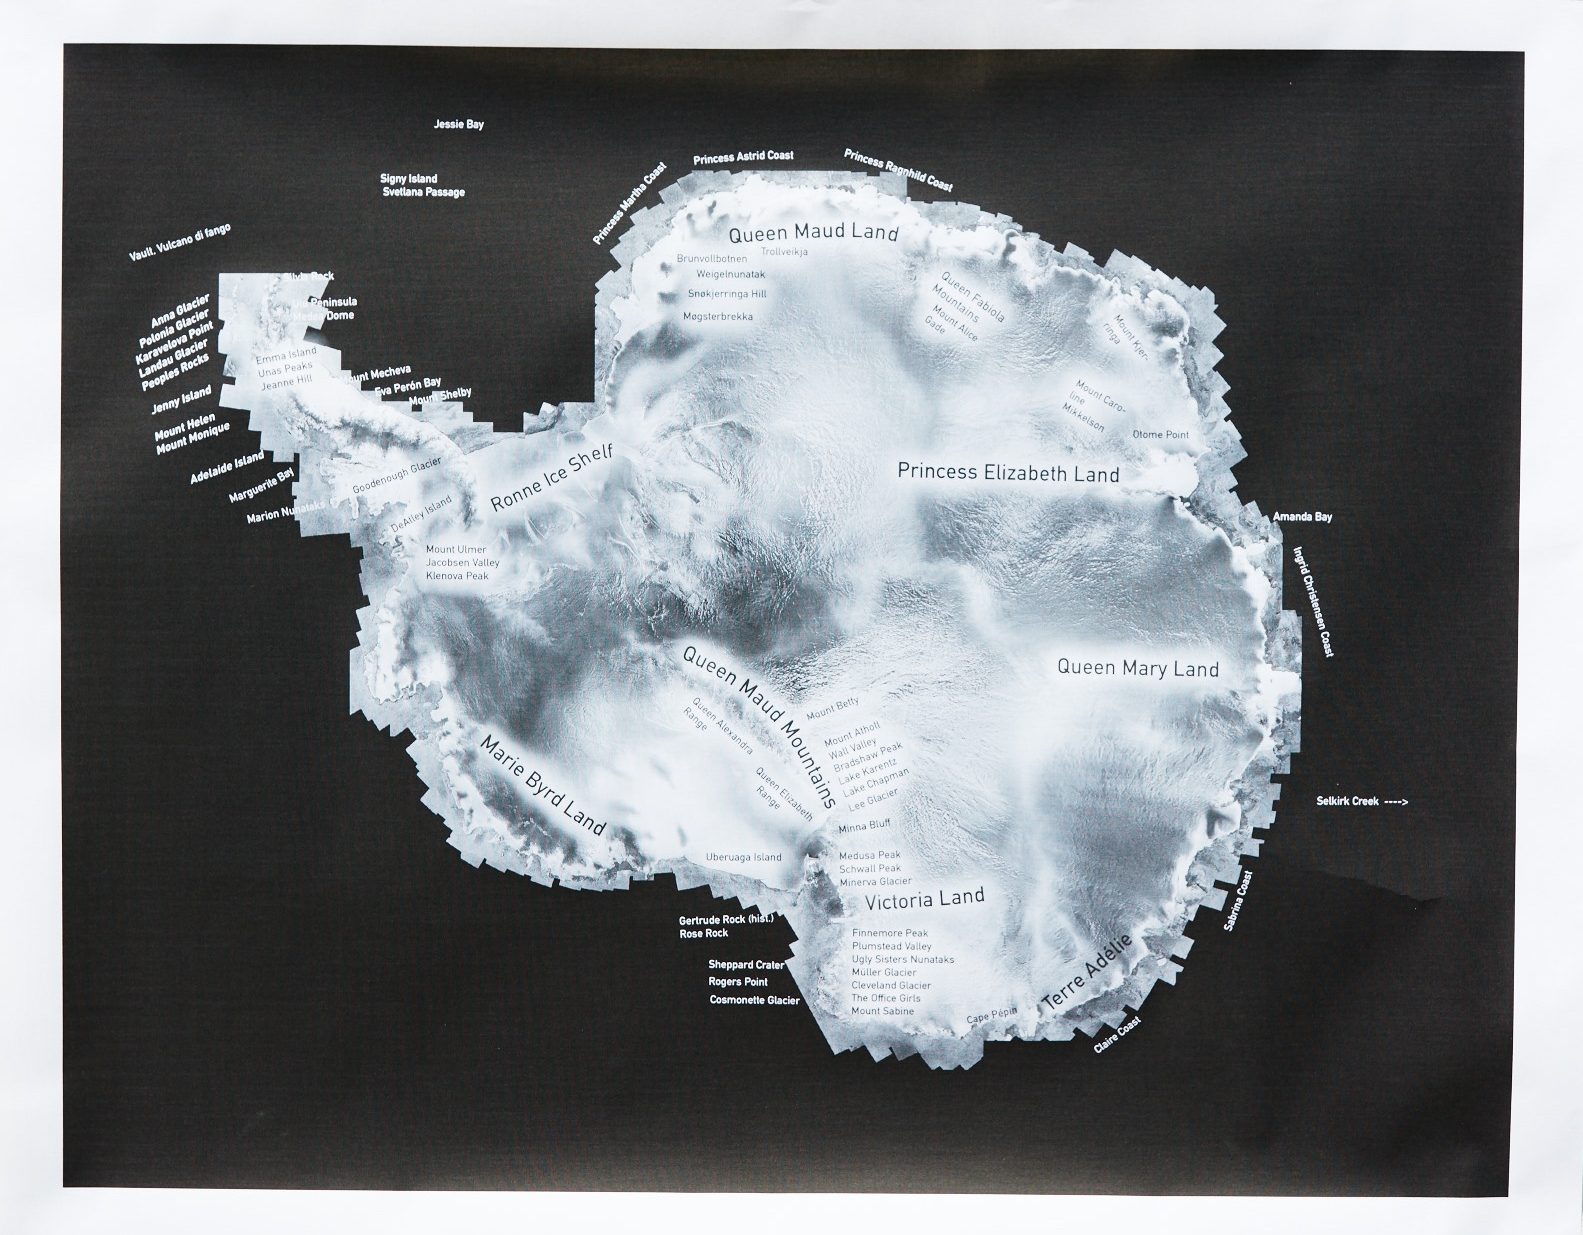 Prototype2 Antarctic Women Place names map  (official place names named for Antarctic women from scientists, patrons, daughters, queens, support staff, etc), Scientific Committee on Antarctic Research Open Science Conference, presented in Malaysia Aug 22, 2016 at Wikibomb Antarctic Women event to launch 75+ new or updated bios on women scientists in Antarctica. Additions? email: carol @ caroldevine.org